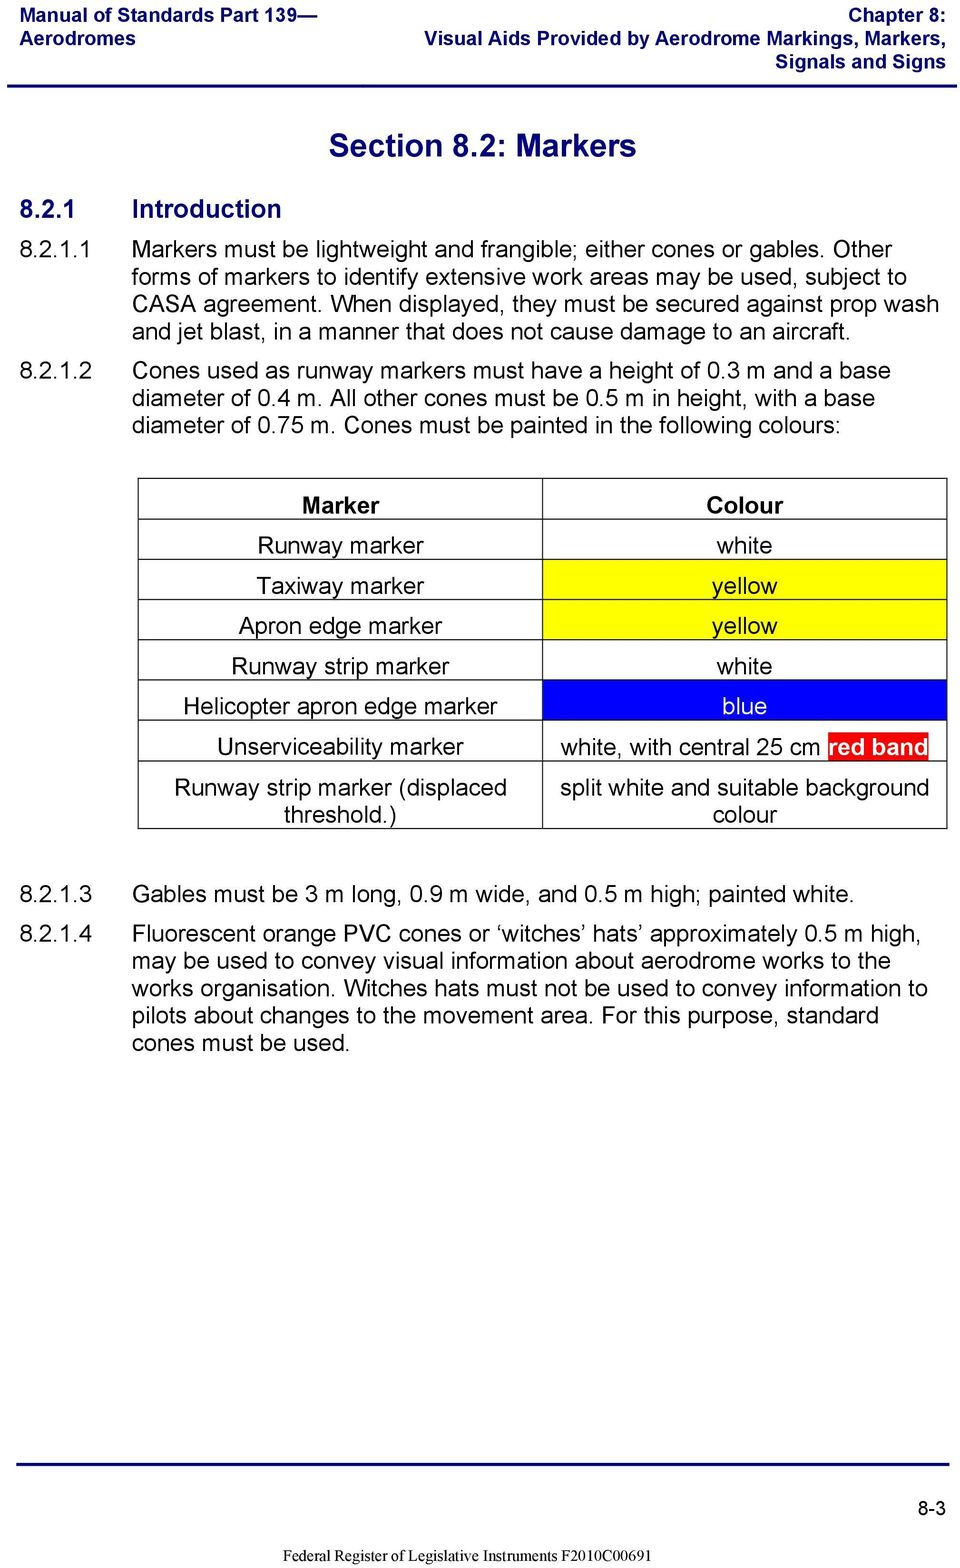 chapter 8 visual aids provided by aerodrome markings markers rh docplayer net manual of standards (mos) – part 139 aerodromes manual of standards part 139 australia